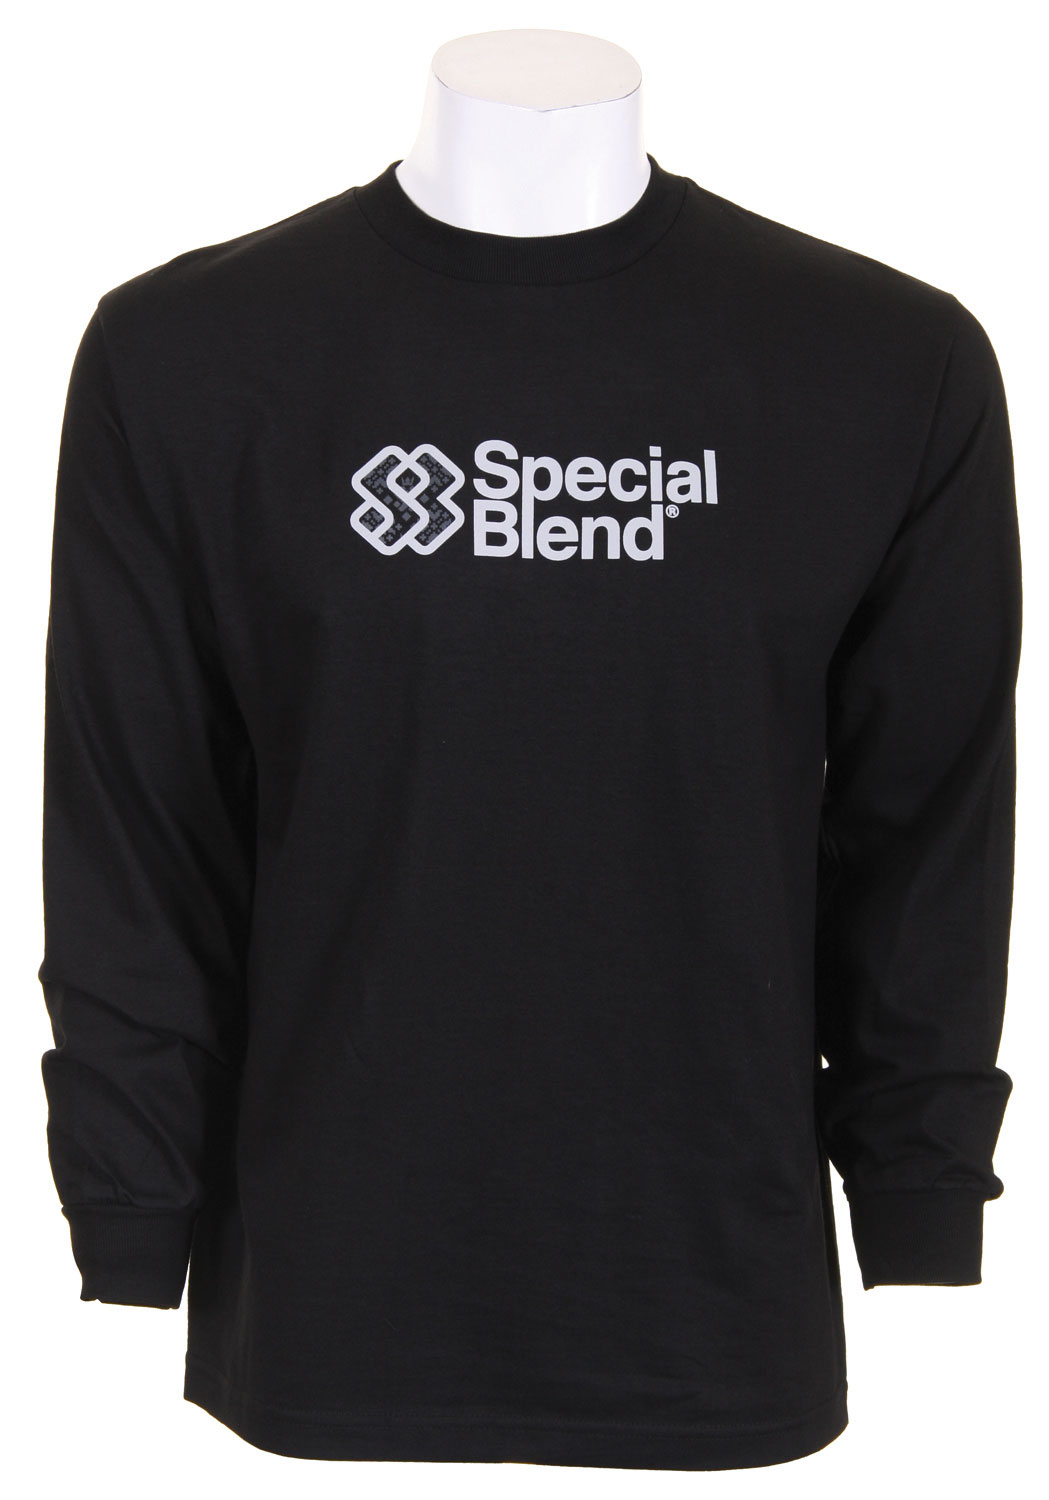 Basic best describes this great long sleeved t-shirt from Special Blend. This 100% cotton t-shirt will take you from the slopes to the dance floor with ease. Its simplistic style and large Special Blend logo are perfect for the guy that is not trying too hard. Make a subtle statement in the great basic long sleeved tee from Special Blend. Priced just right, the Special Blend Classic Stack L/S T-Shirt is a must have for any guy.Key Features of the Special Blend Classic Stack L/S T-Shirt Black: 100% Cotton - $10.75